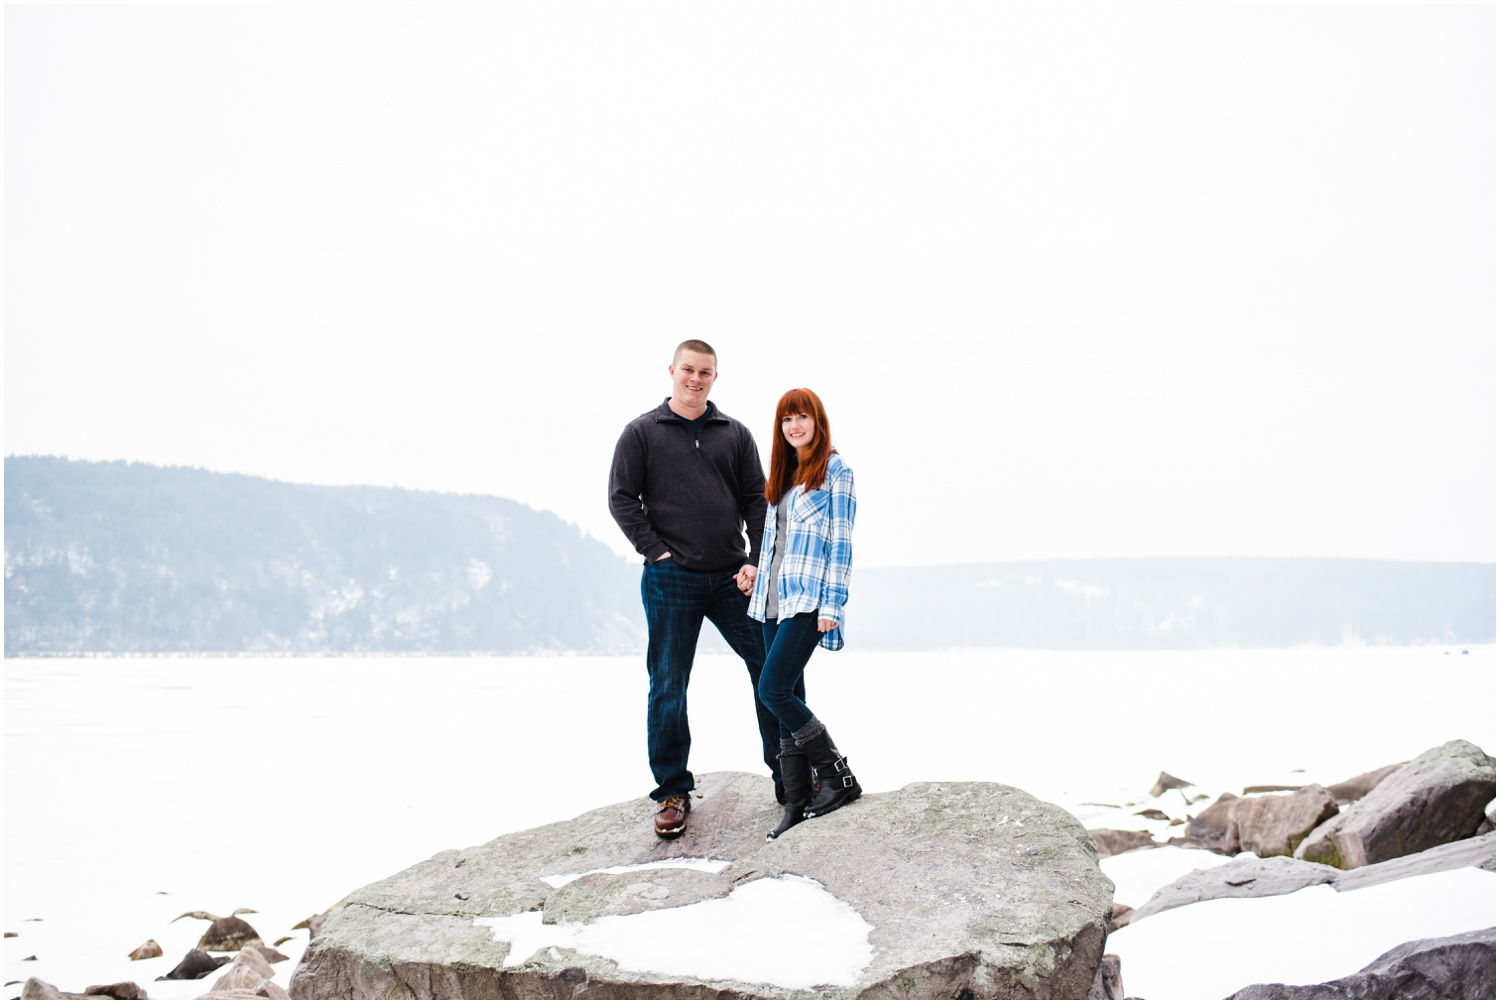 Devils-Lake-Baraboo-Wisconsin-Engagement-Photographer-Lindsey-And-Cody-Engaged-108.jpg